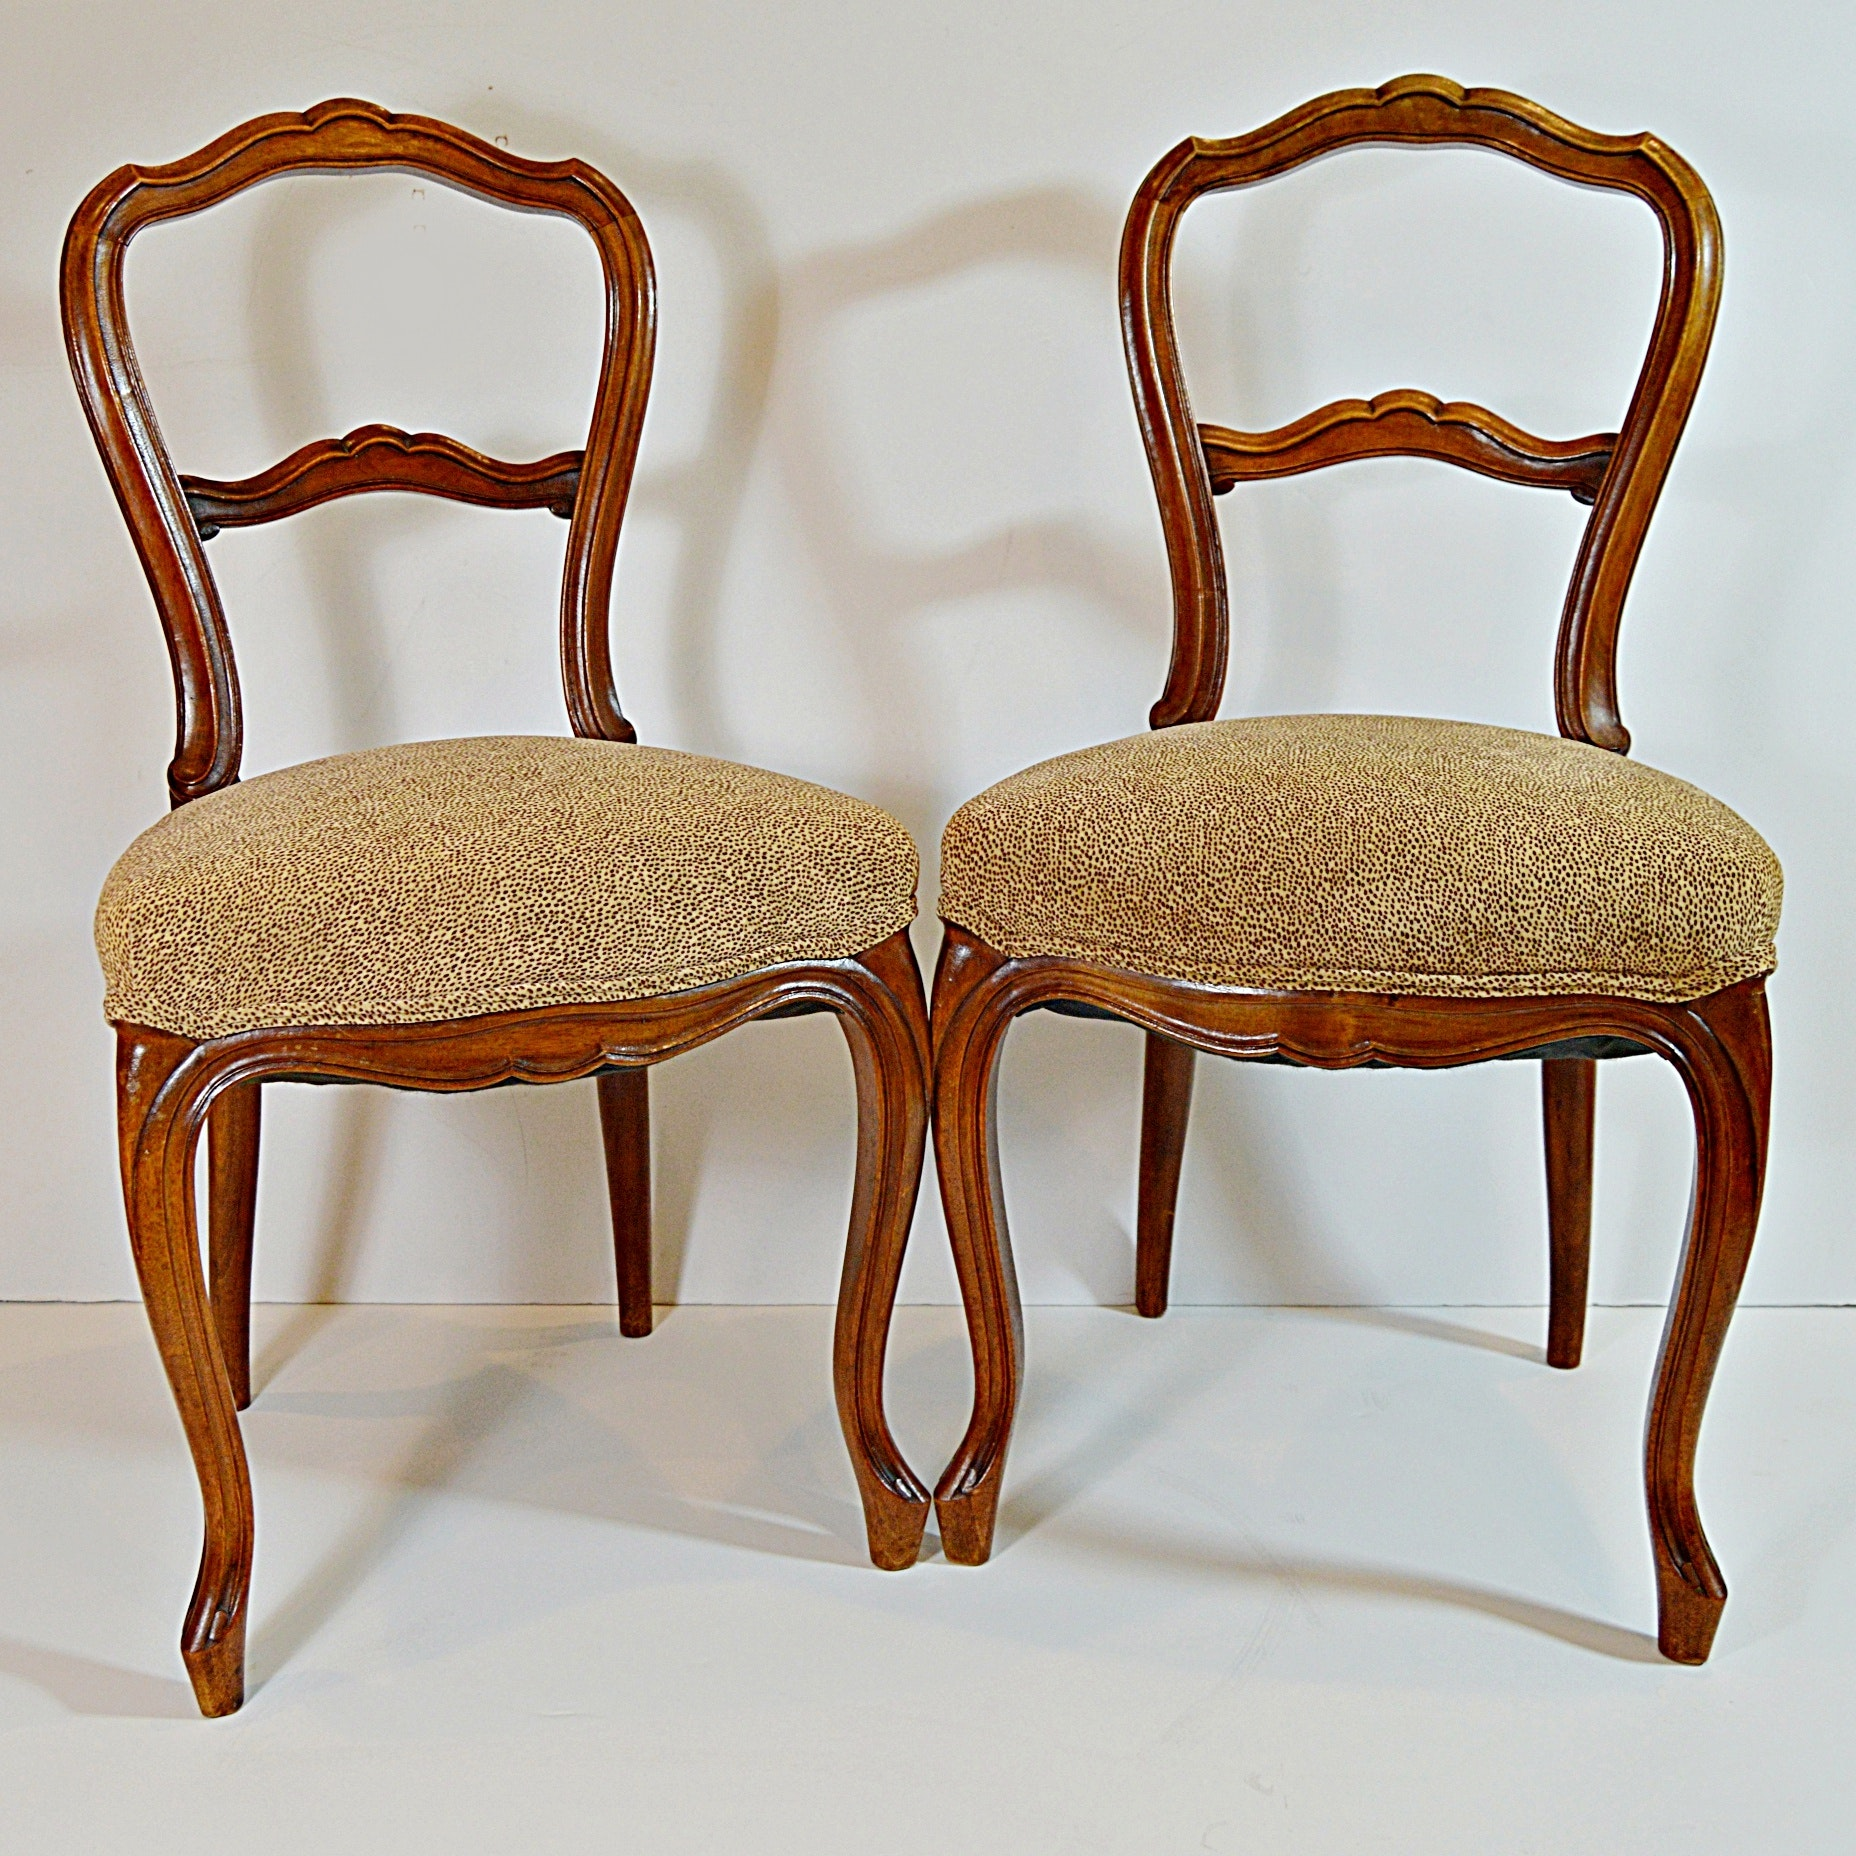 Pair of Antique Louis XV Style Side Chairs